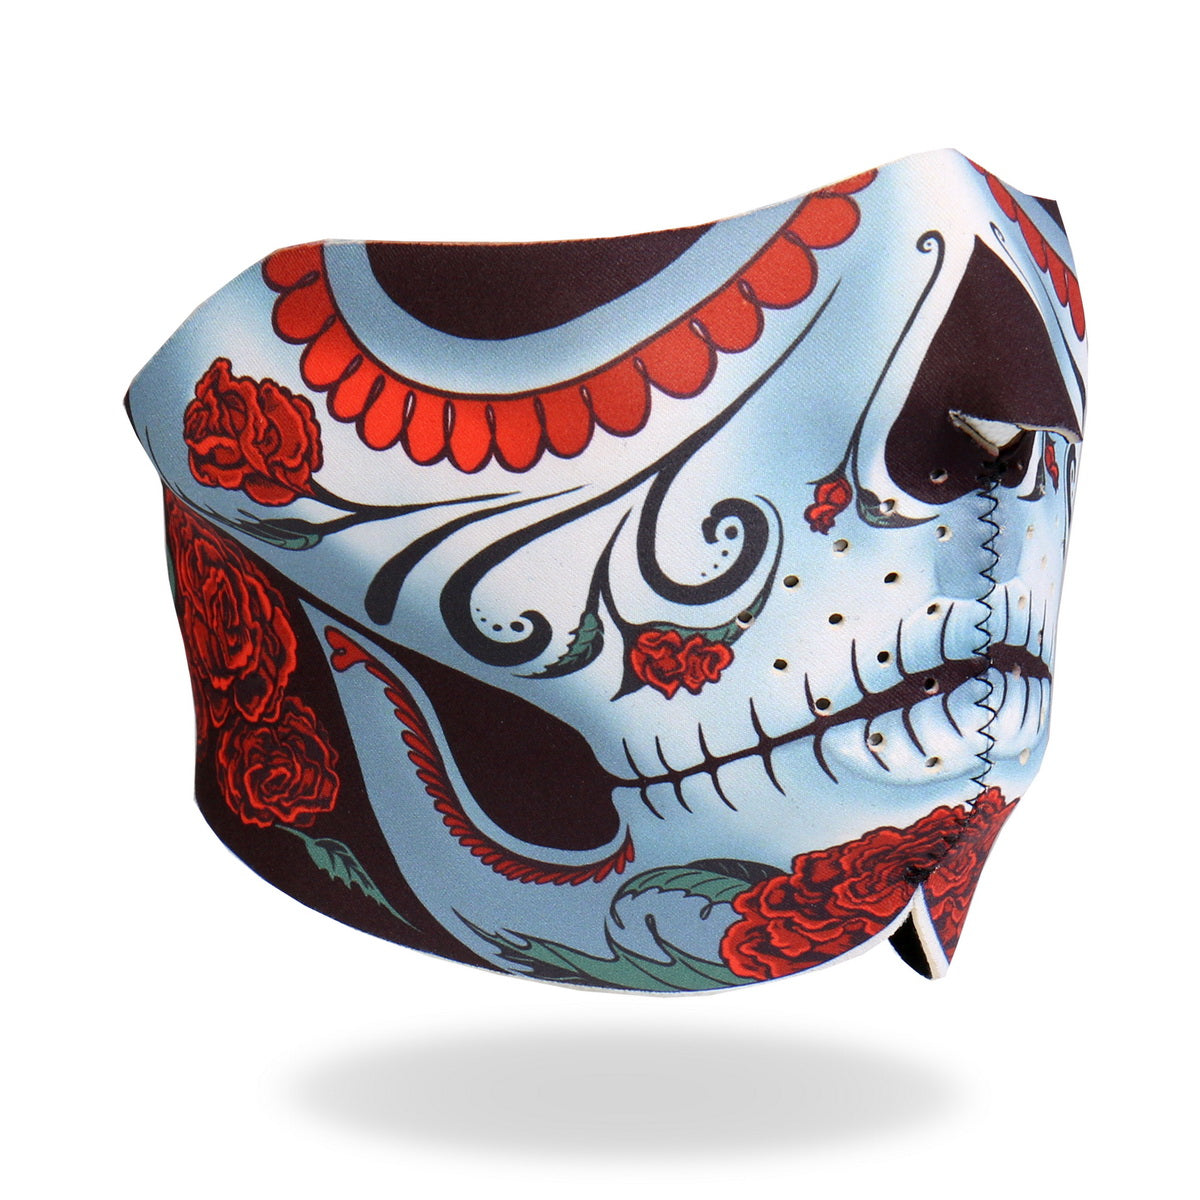 Hot Leathers FMB1005  Calavera Half Face Mask